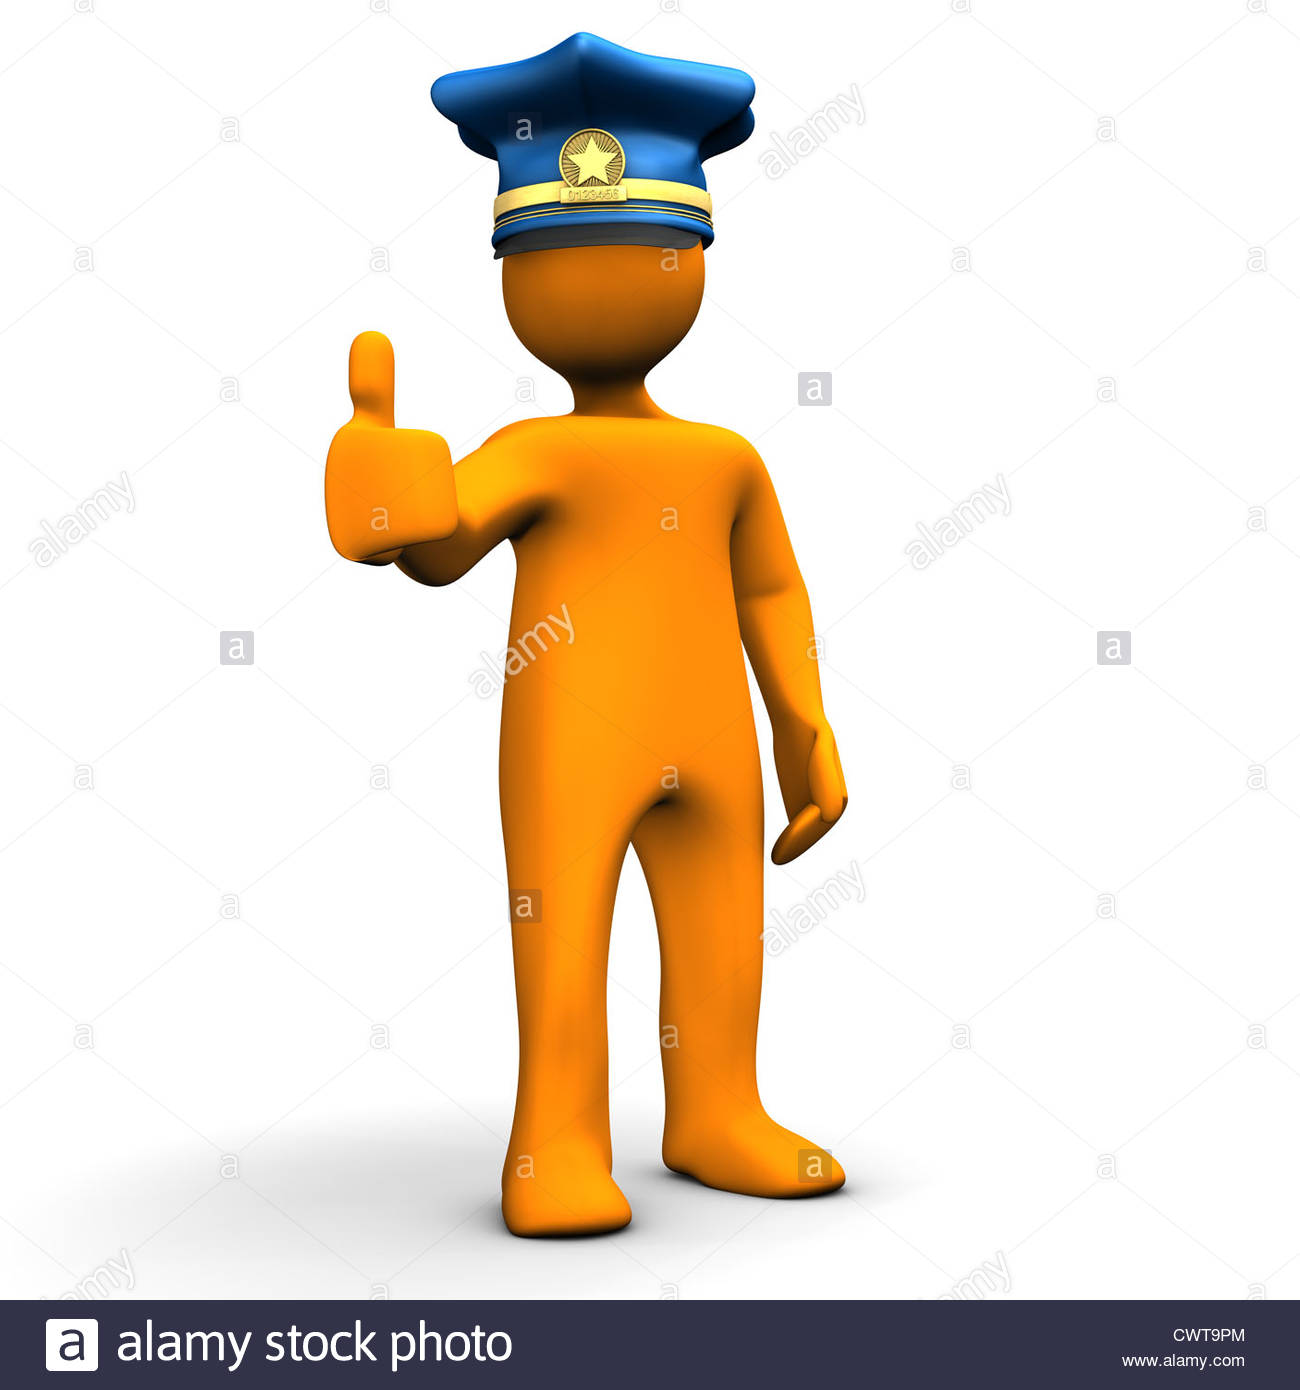 Orange Cartoon Character With Police Cap And The Symbol For Ok Stock